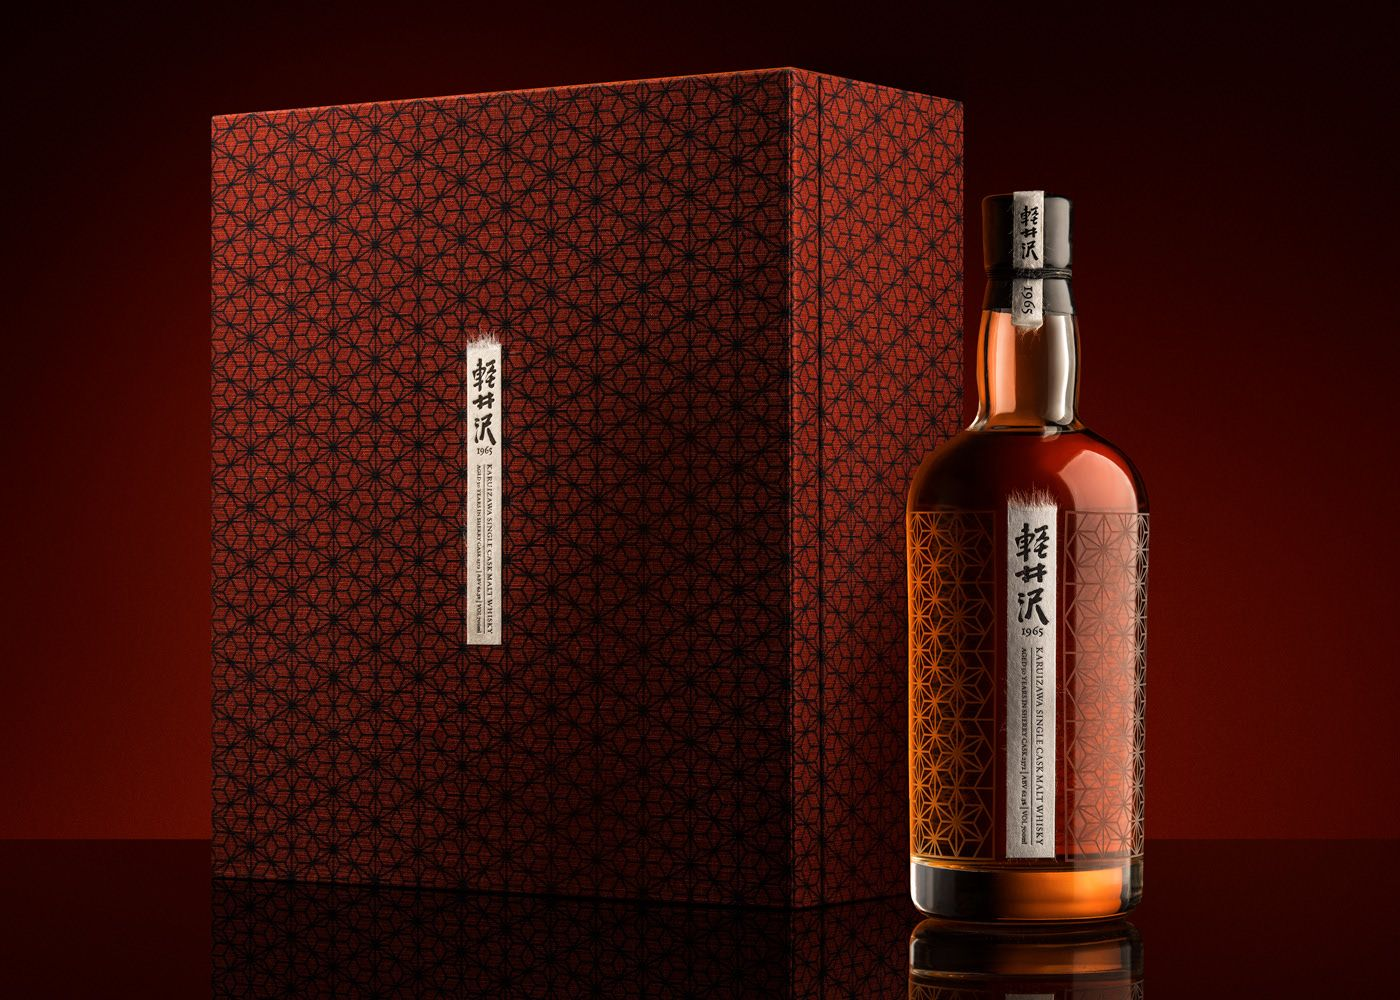 Karuizawa 1965 Monyou Edition On Behance In 2020 Whisky Packaging Japanese Whisky Packaging Design Inspiration